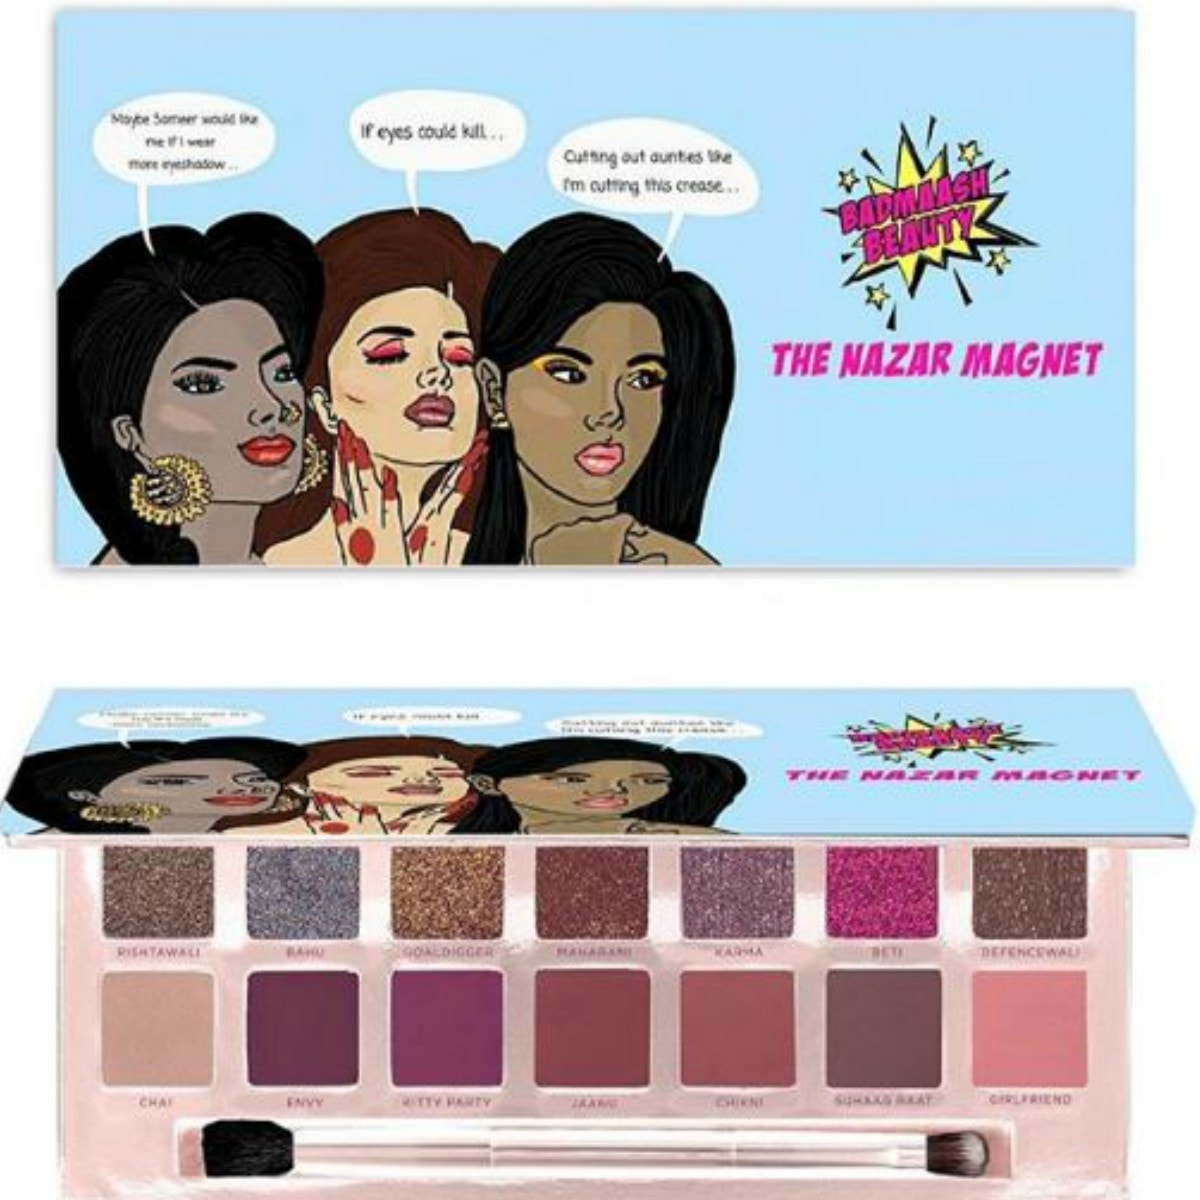 We made sure that anyone who gets our palette will be able to use every colour, says Badmaash Beauty co-founder Beena Alvi